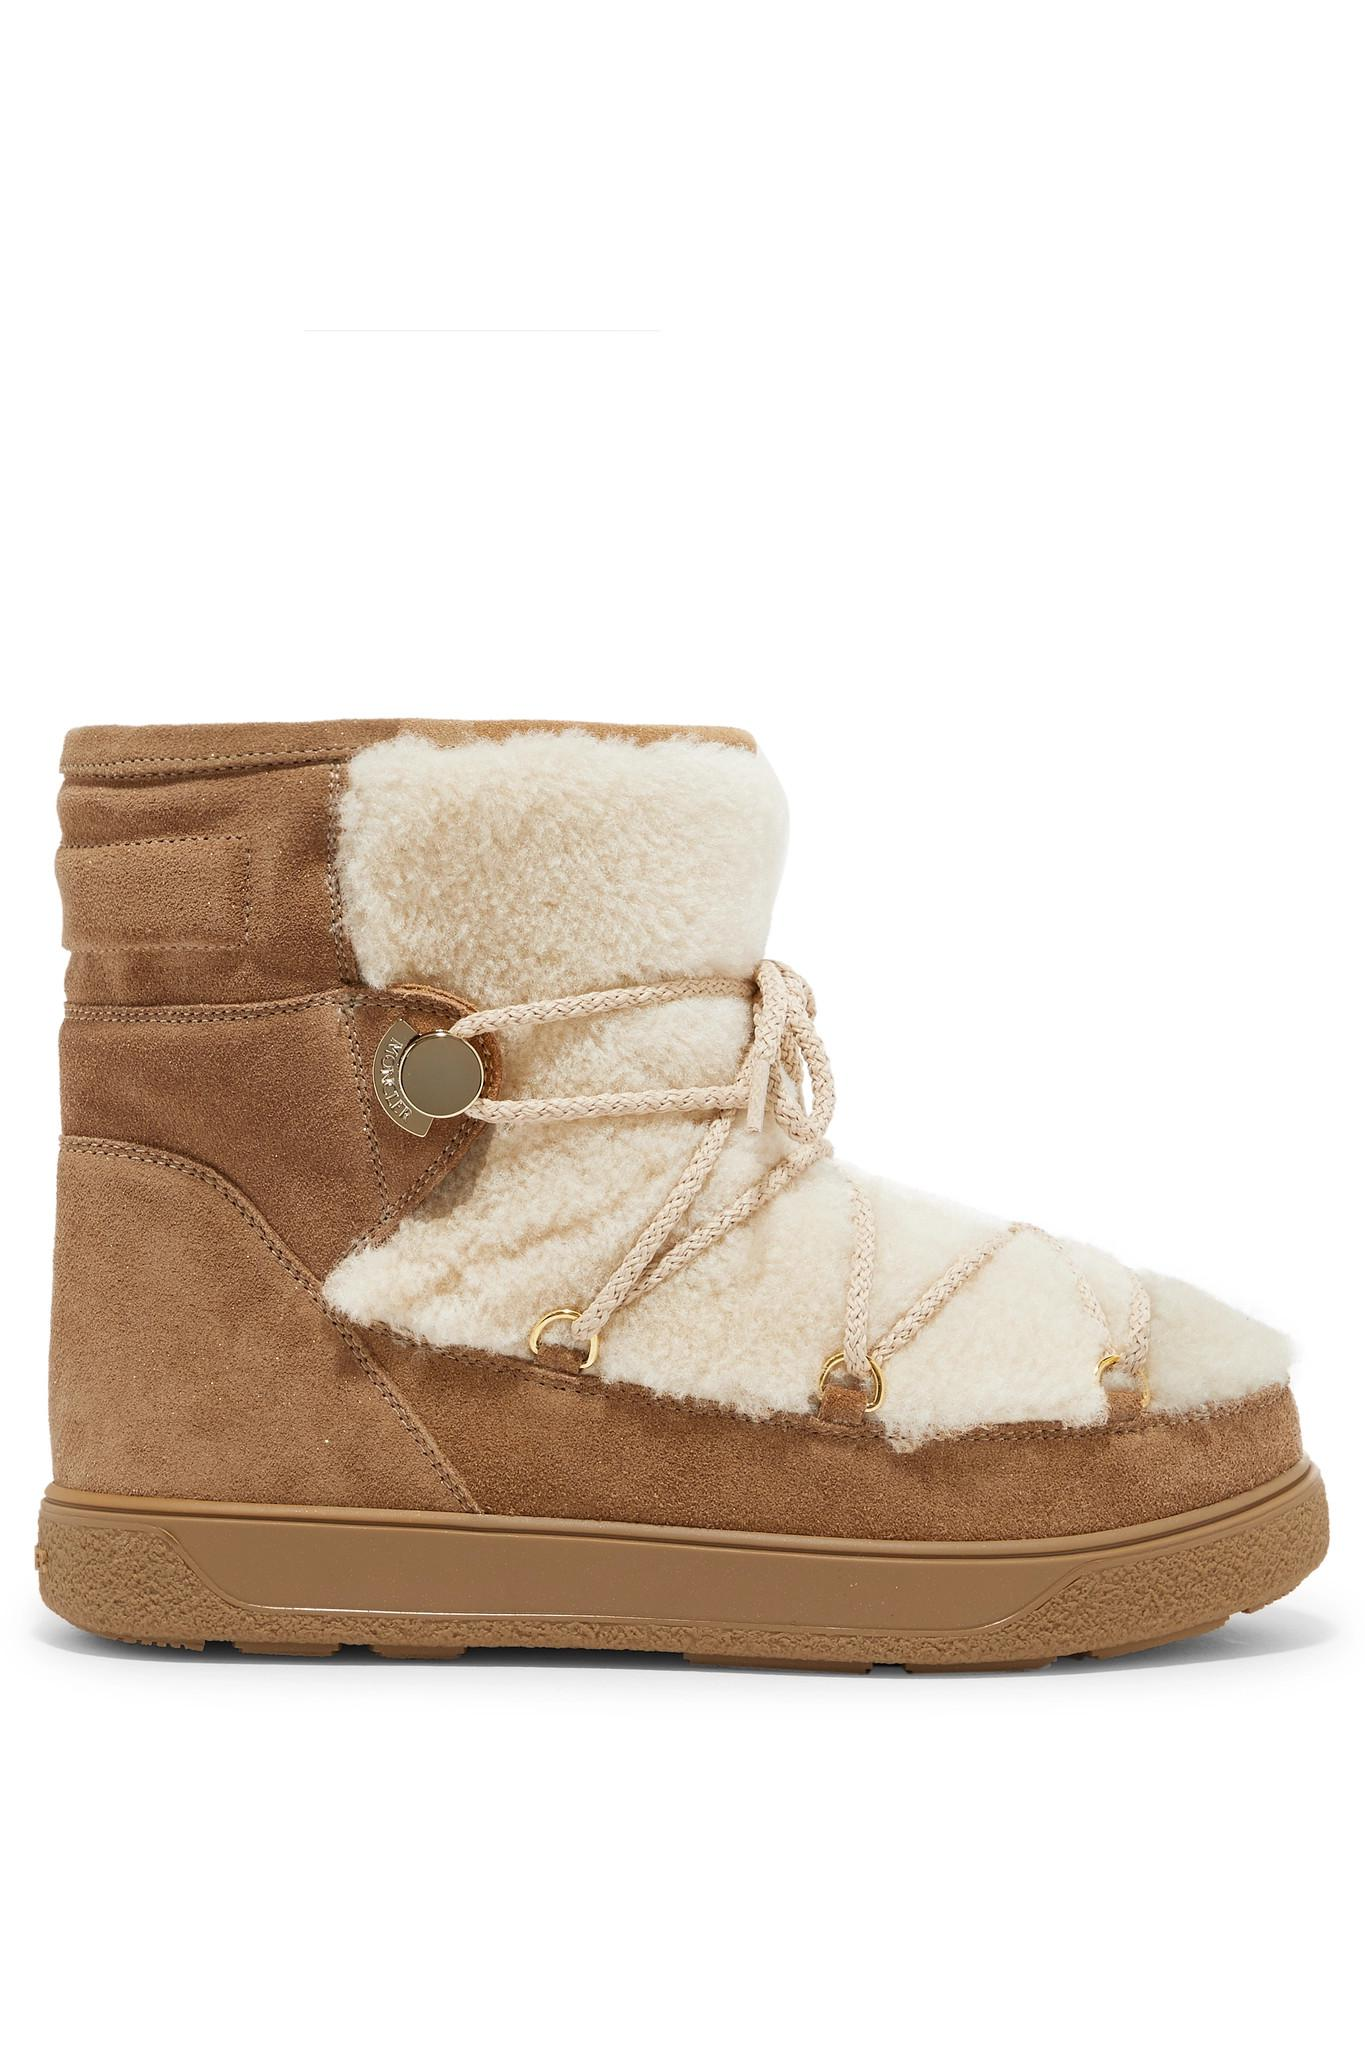 22c837499c70 Moncler New Fanny Shearling-paneled Glittered Suede Snow Boots in ...